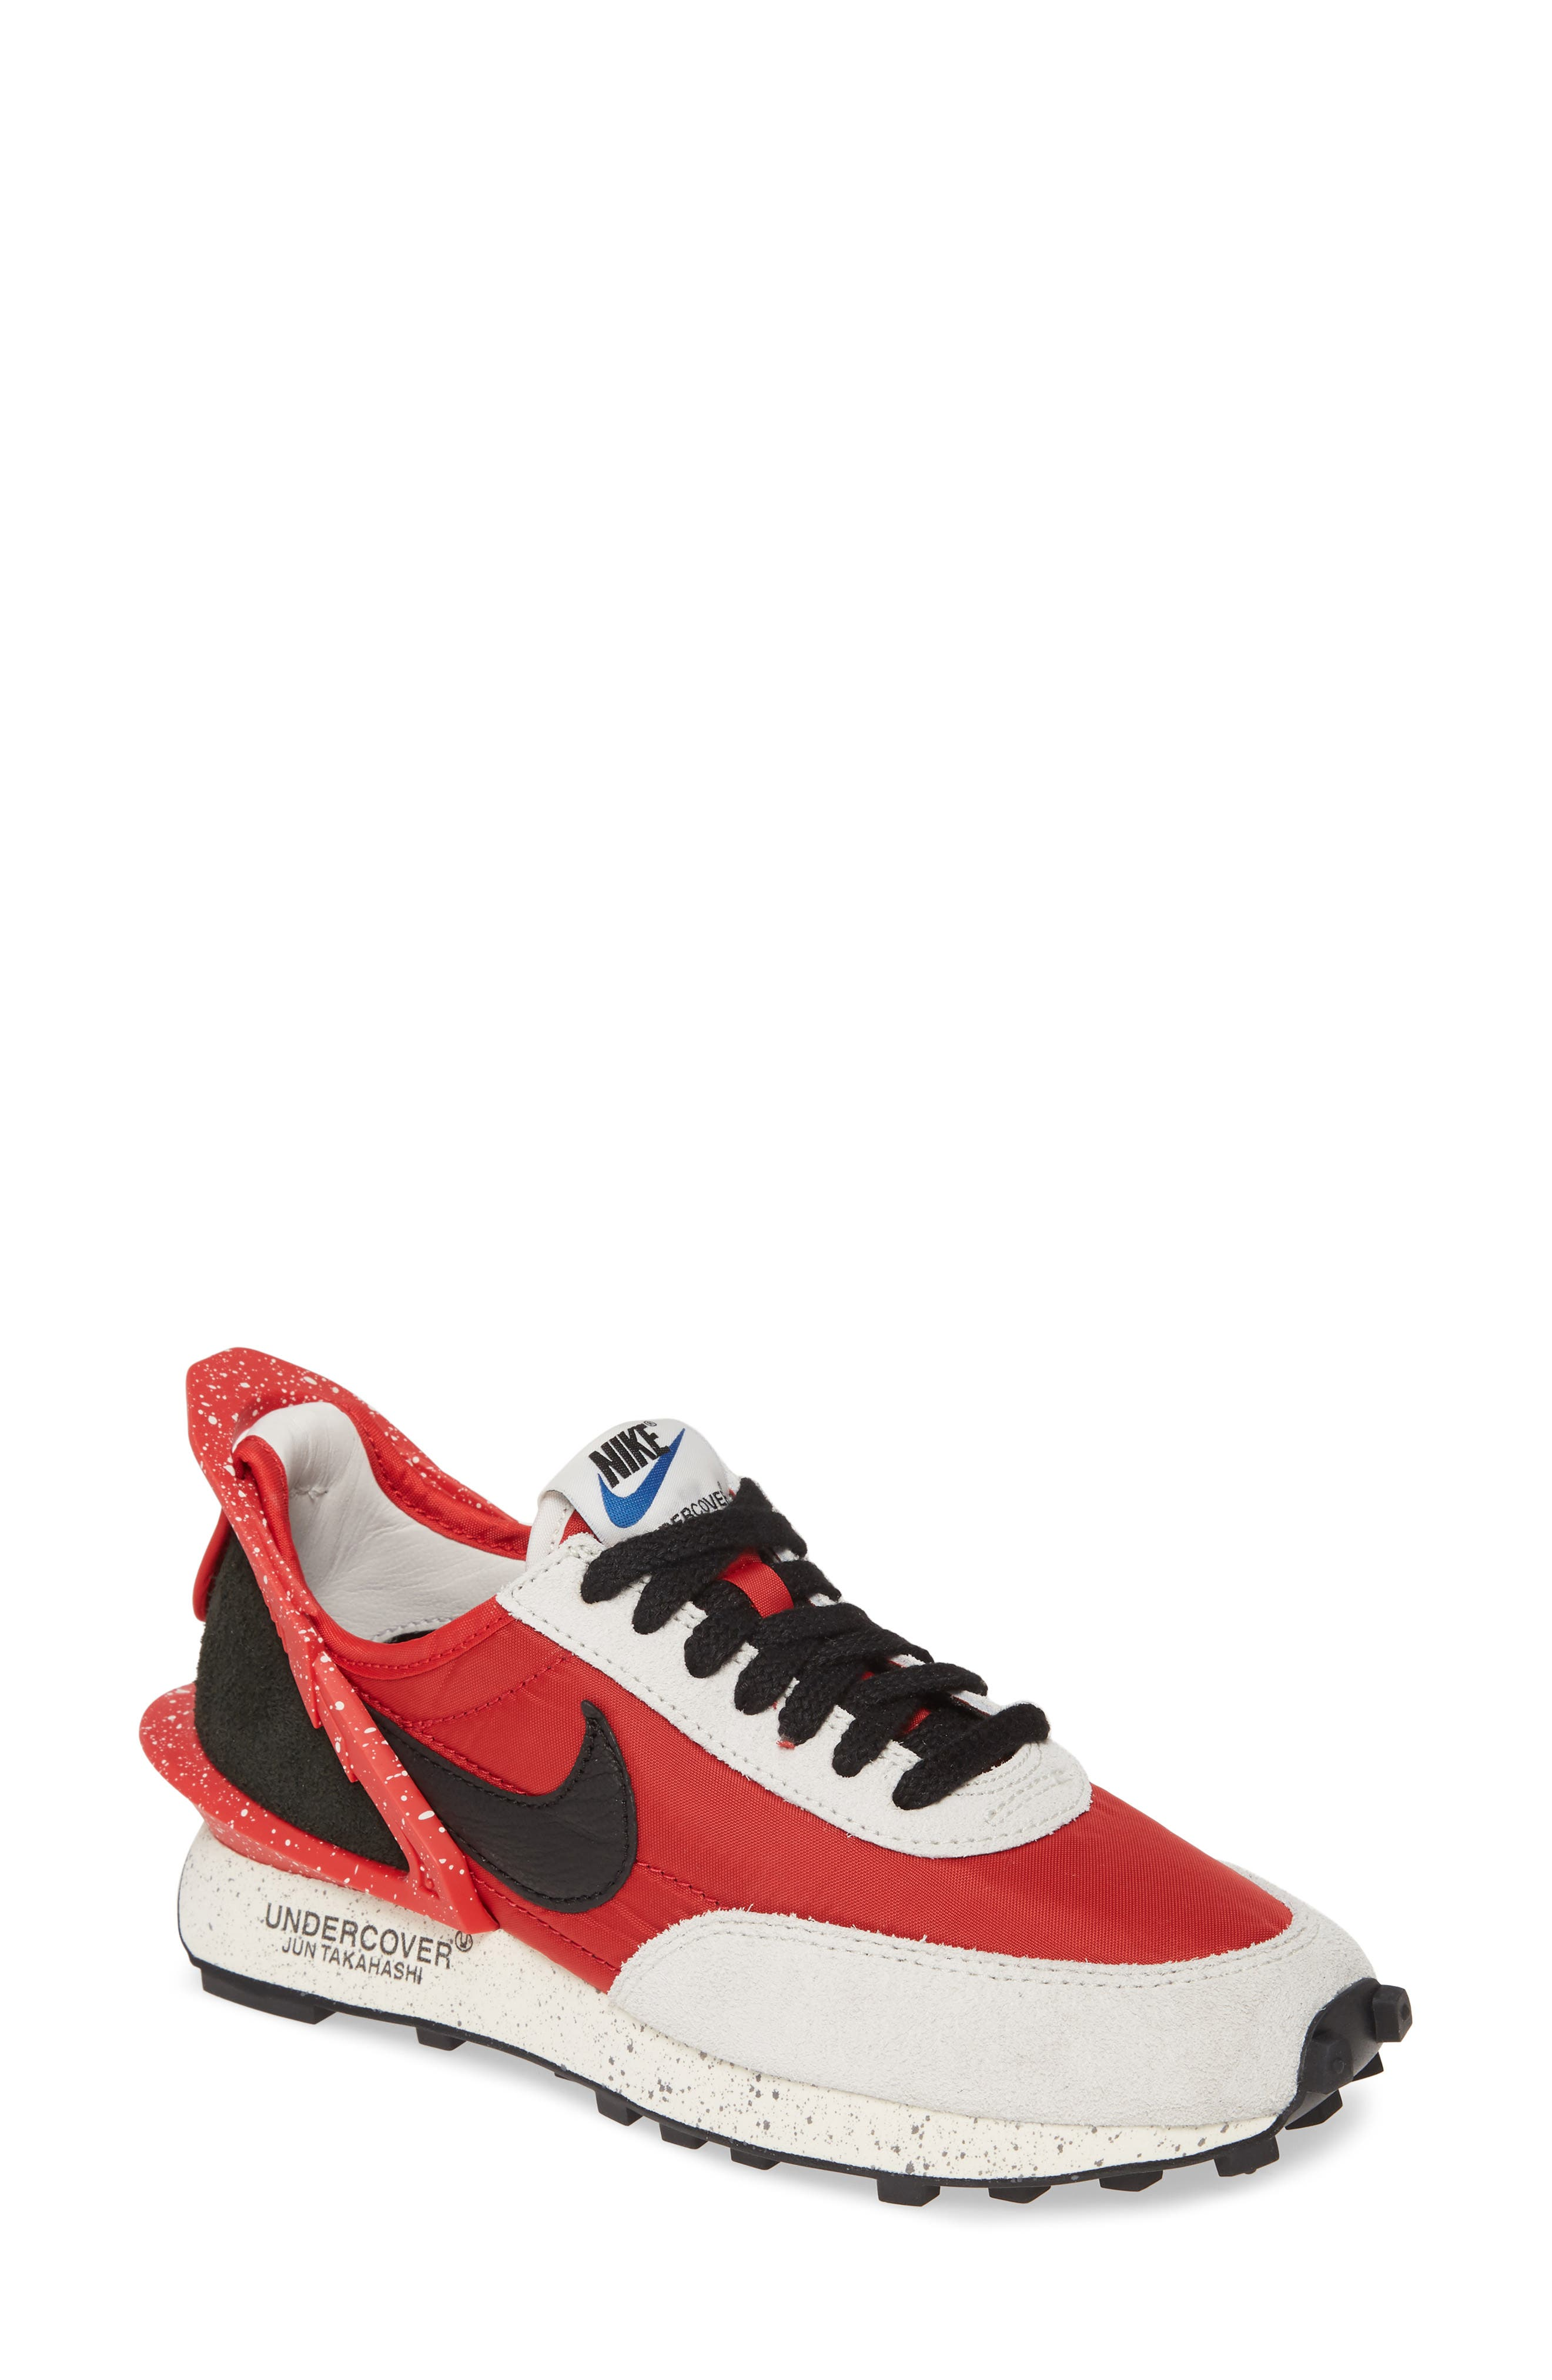 Air Max Thea Red Salmon car concepts.co.uk